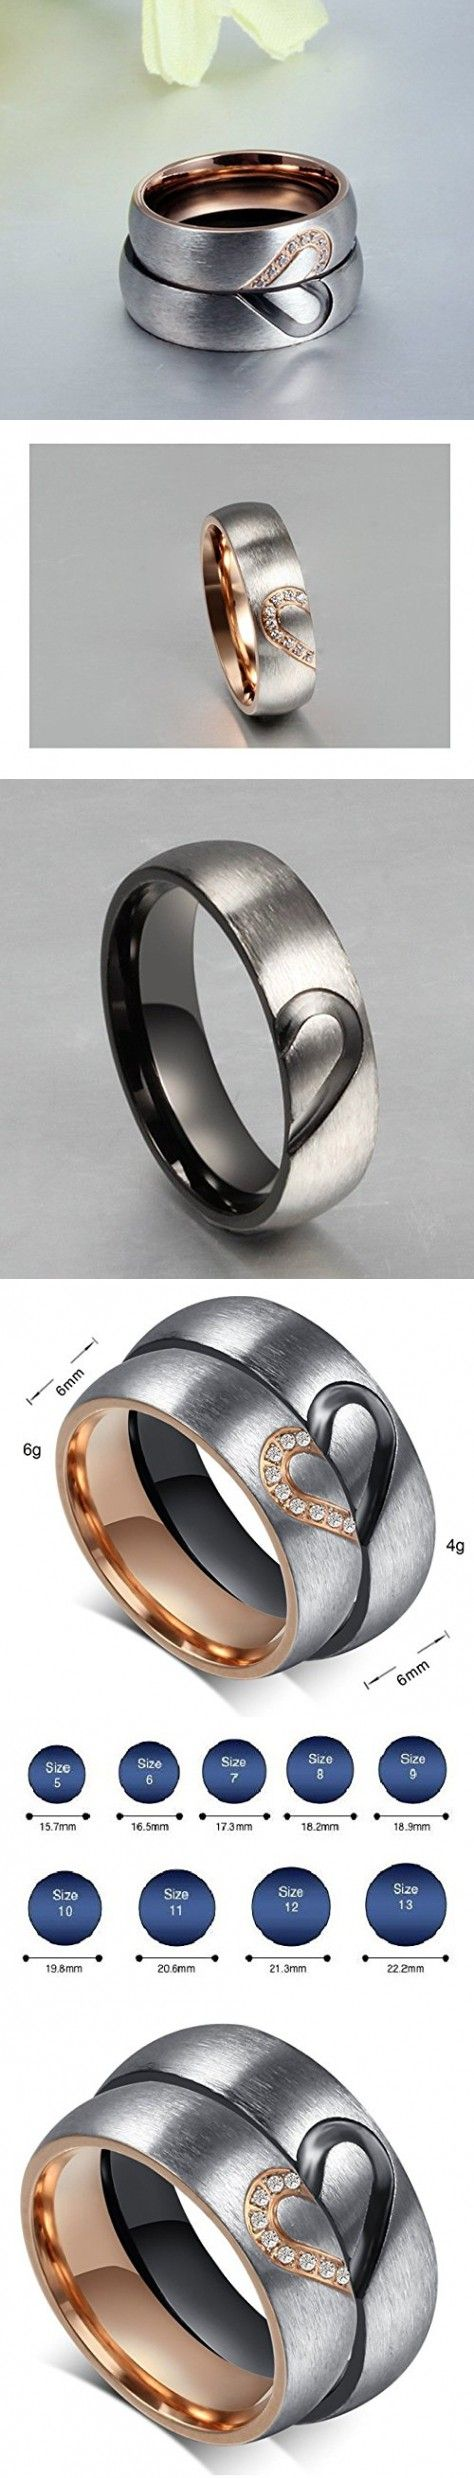 women's wedding bands target wedding bands Aegean Jewelry Titanium Couple Fashion Wedding Band Ring We Are a Perfect Match Love